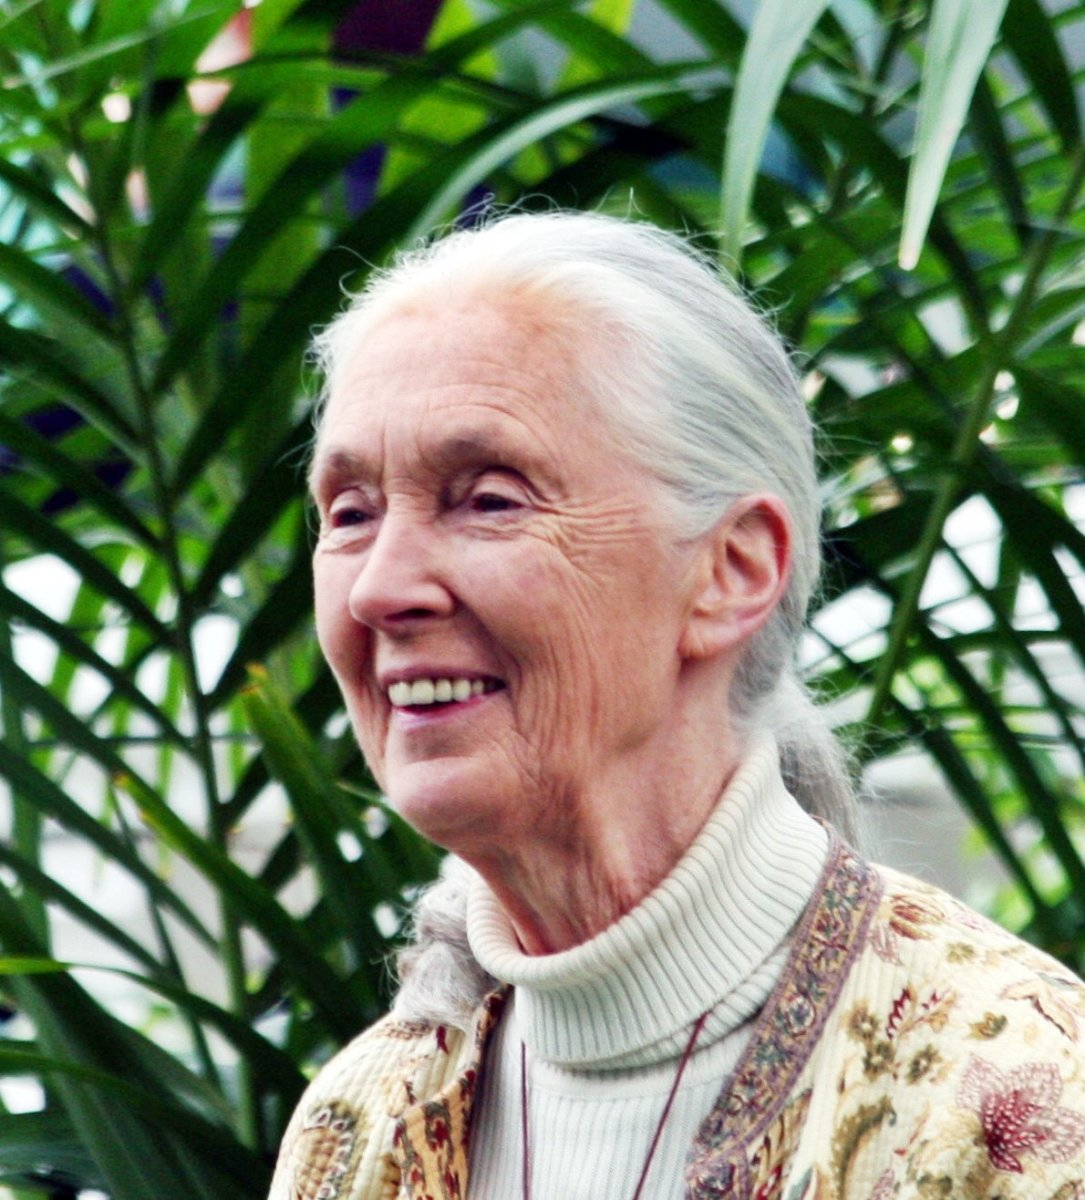 Jane Goodall as Grand Marshall at the Tournament of Roses Parade, in 2012.